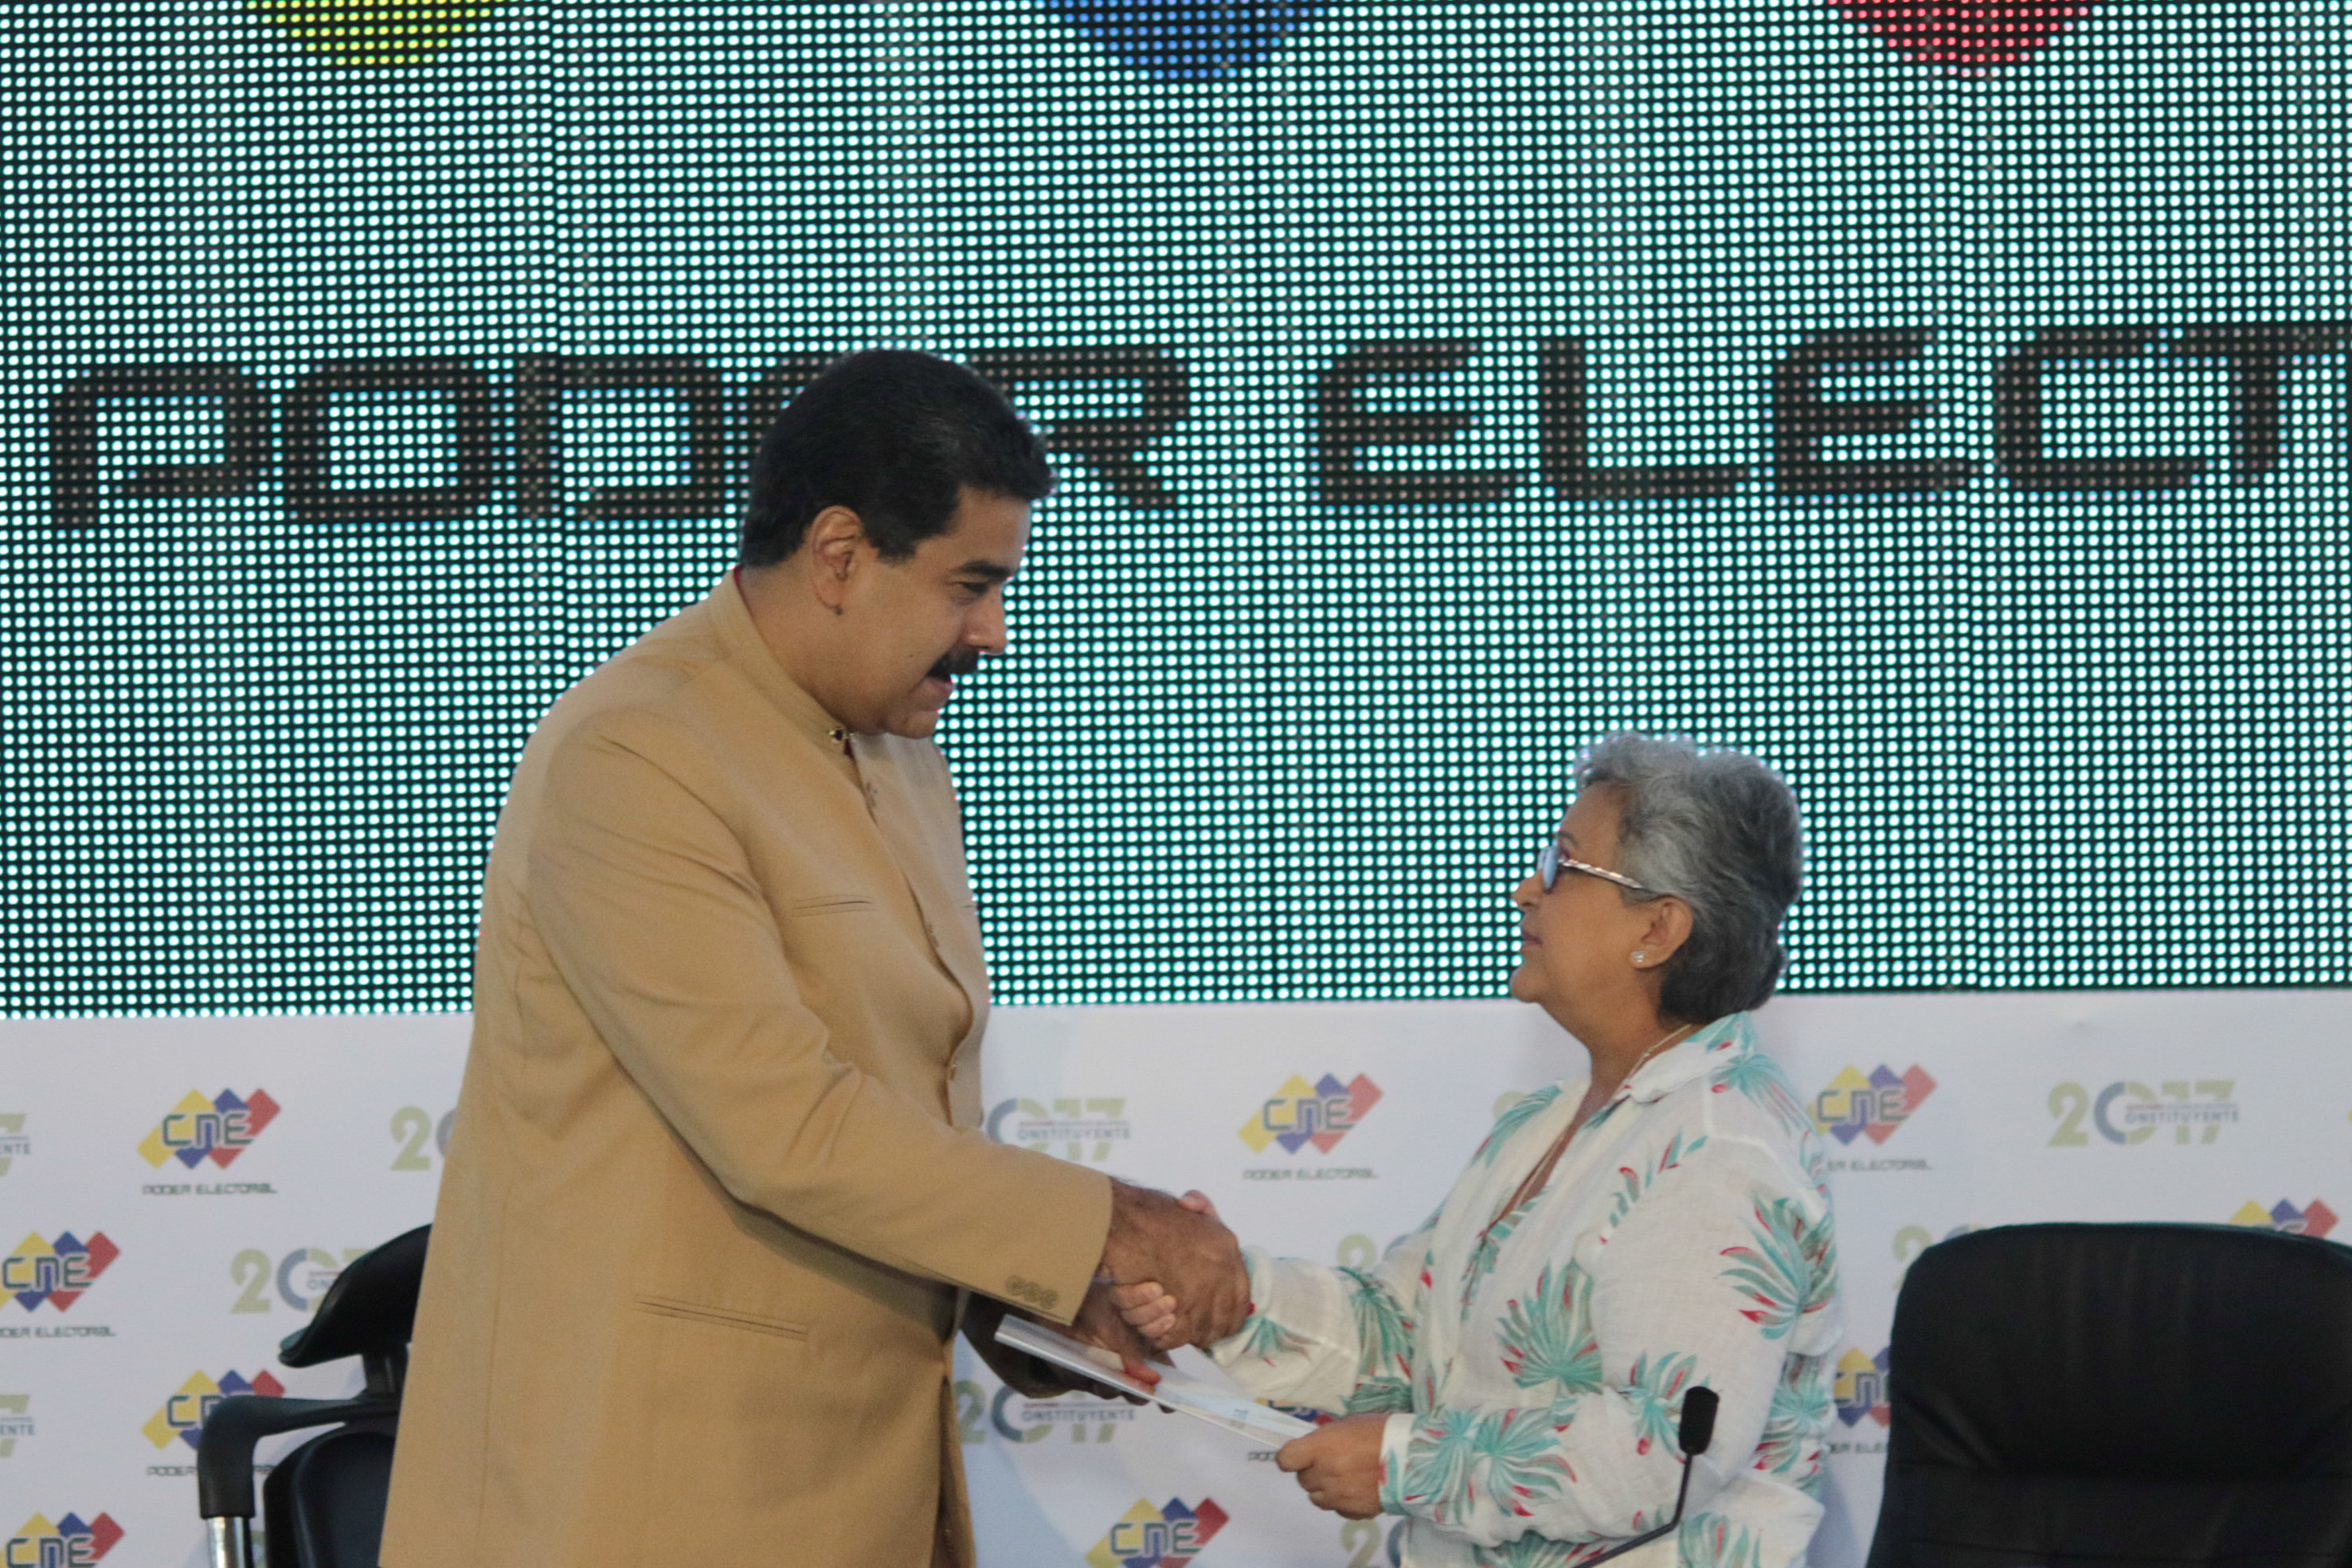 Venezuela's President Nicolas Maduro (L) and National Electoral Council (CNE) President Tibisay Lucena shake hands during their meeting in Caracas, Venezuela July 31, 2017. Miraflores Palace/Handout via REUTERS ATTENTION EDITORS - THIS PICTURE WAS PROVIDED BY A THIRD PARTY.